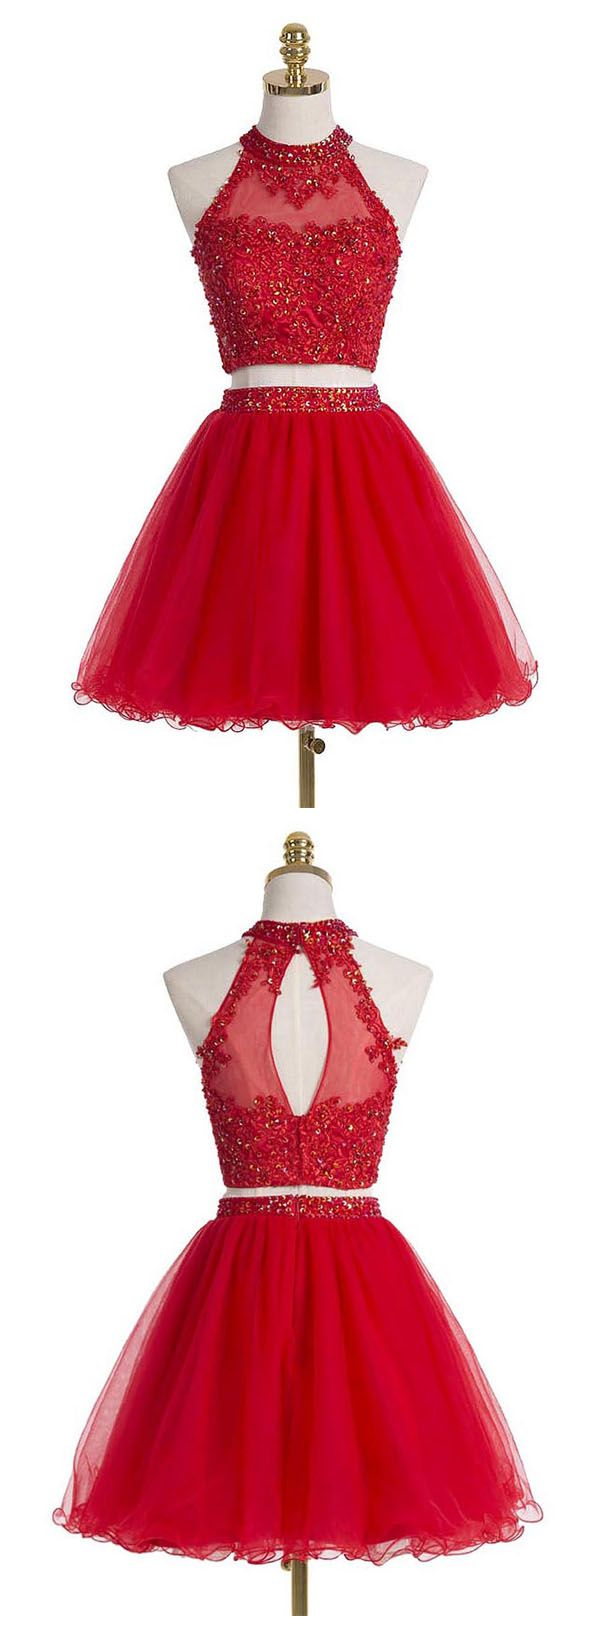 Twopiece scoop short red beaded homecoming dress with appliques